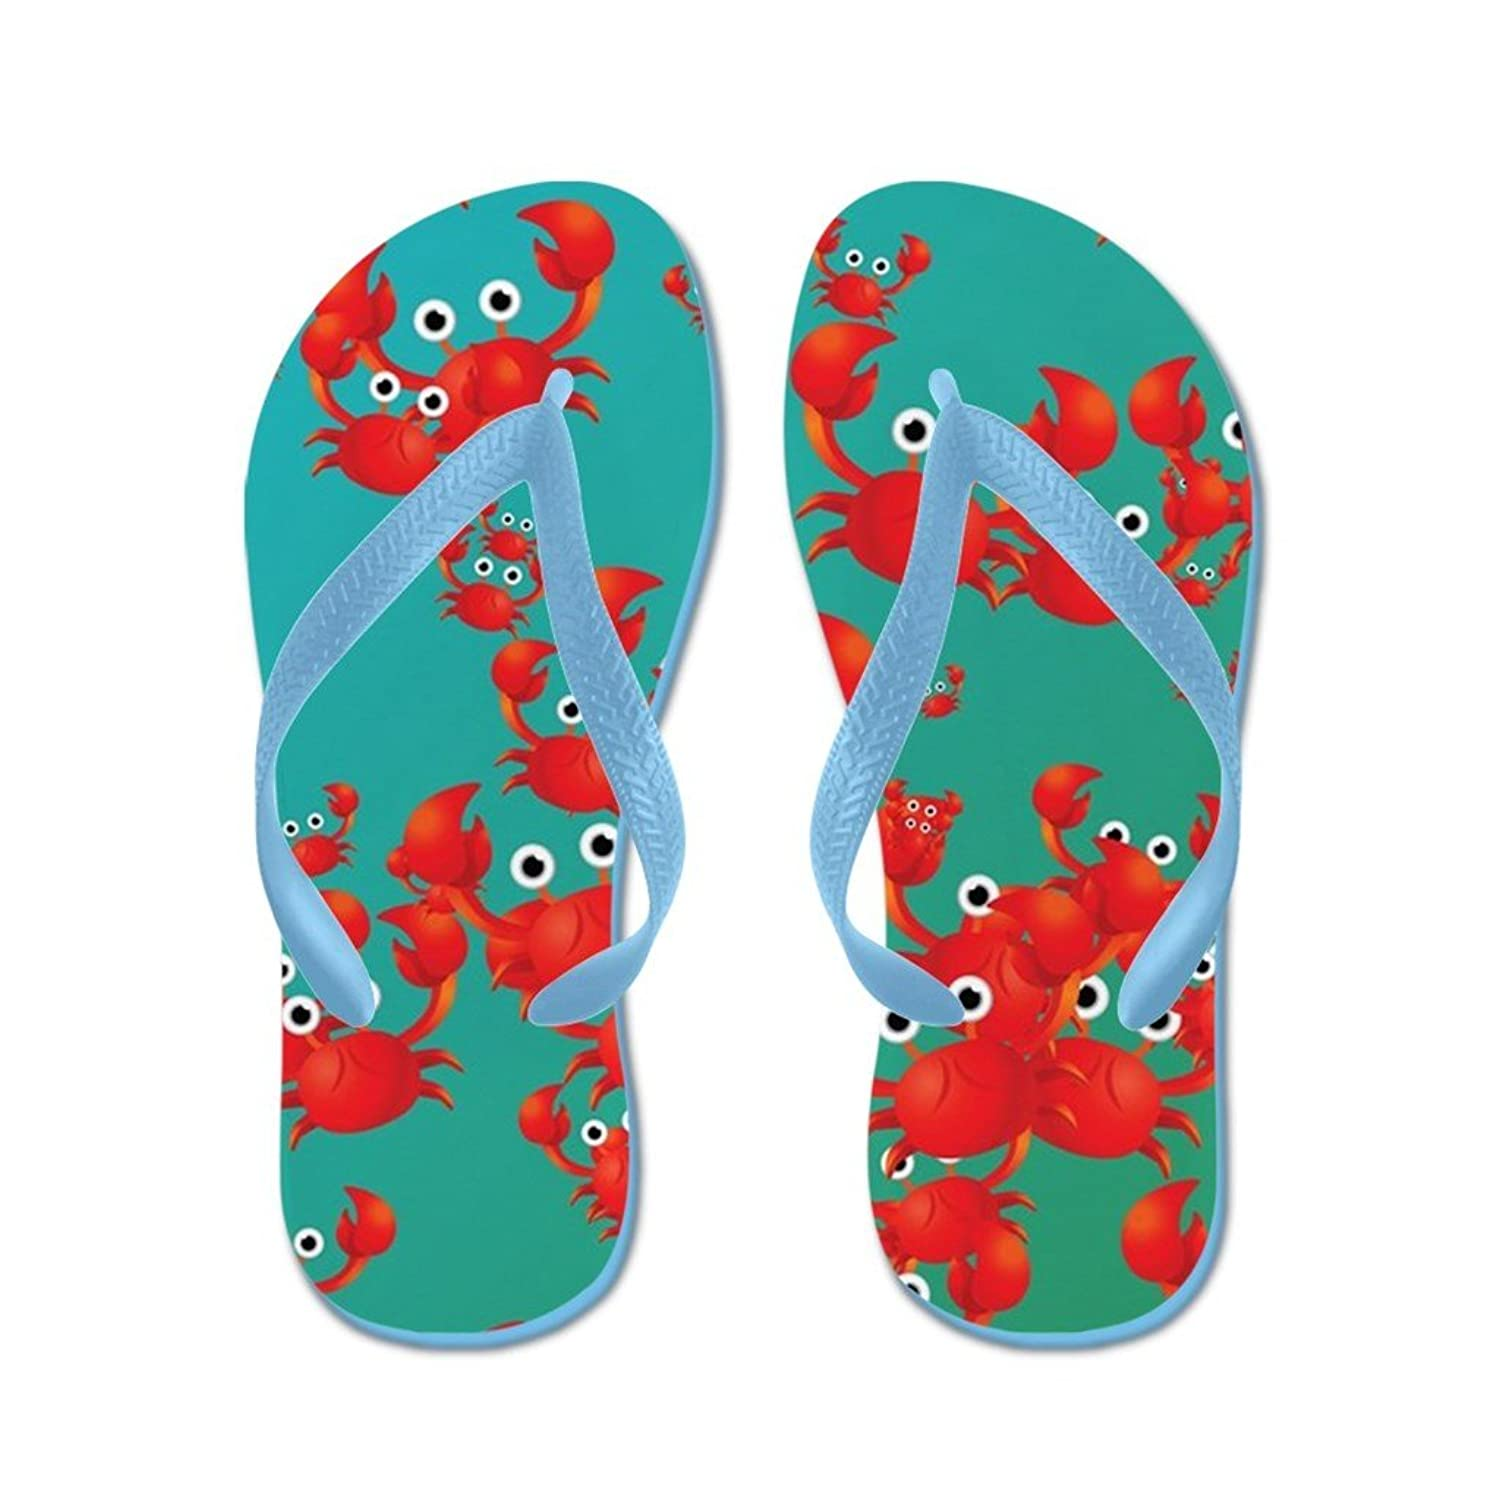 Lplpol Crab World Flip Flops Flip Flops for Kids and Adult Unisex Beach Sandals Pool Shoes Party Slippers